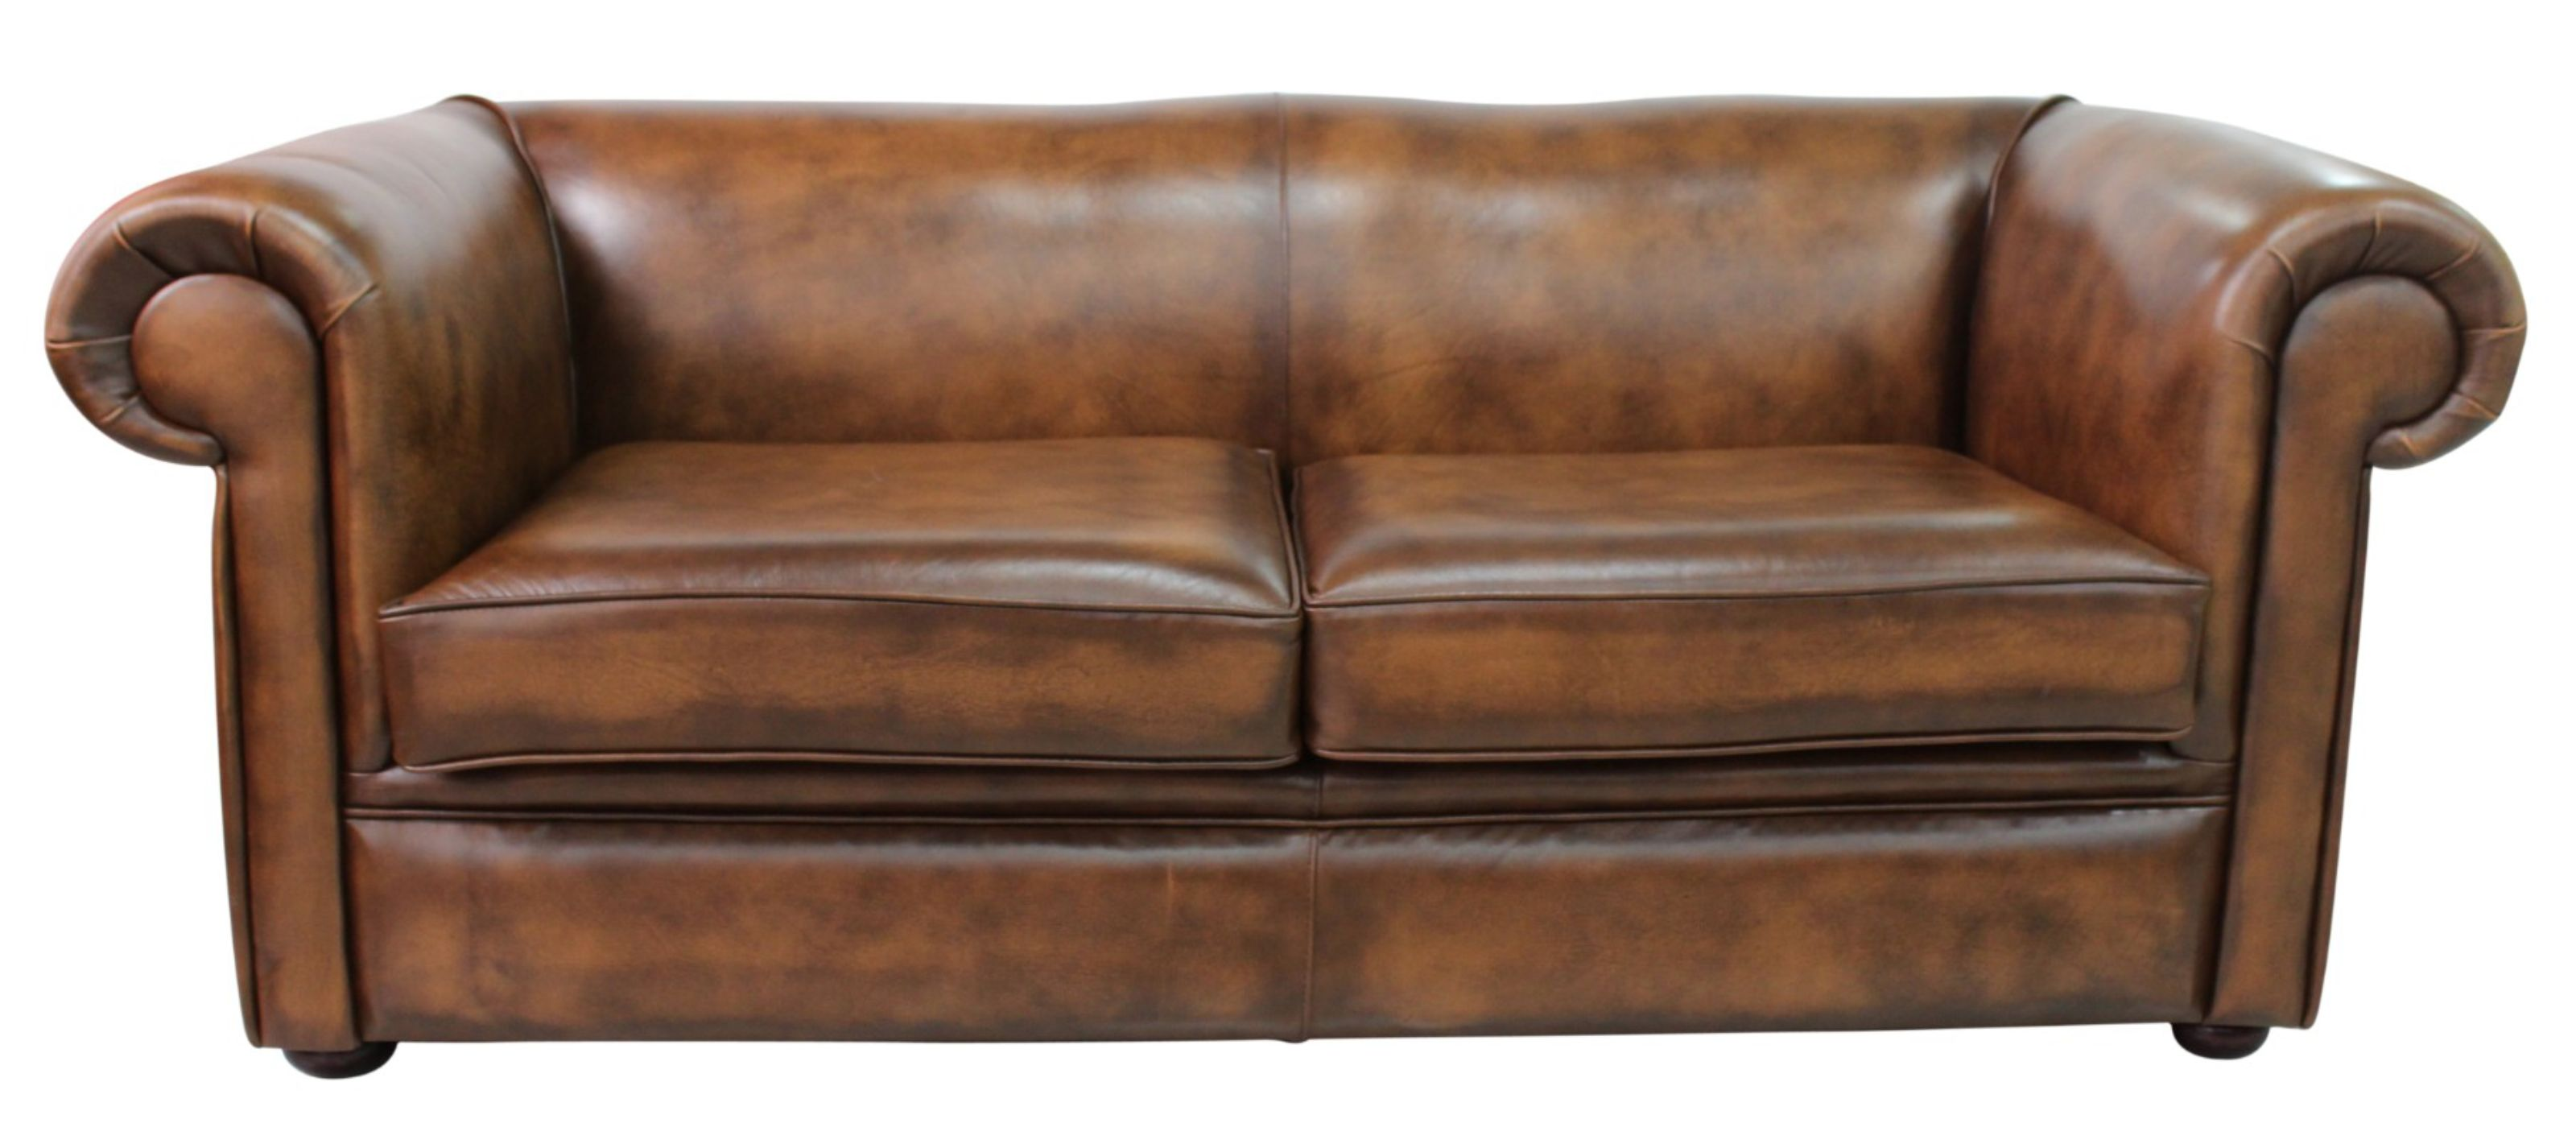 Incredible Chesterfield 1930S 3 Seater Settee Antique Tan Leather Sofa Bralicious Painted Fabric Chair Ideas Braliciousco